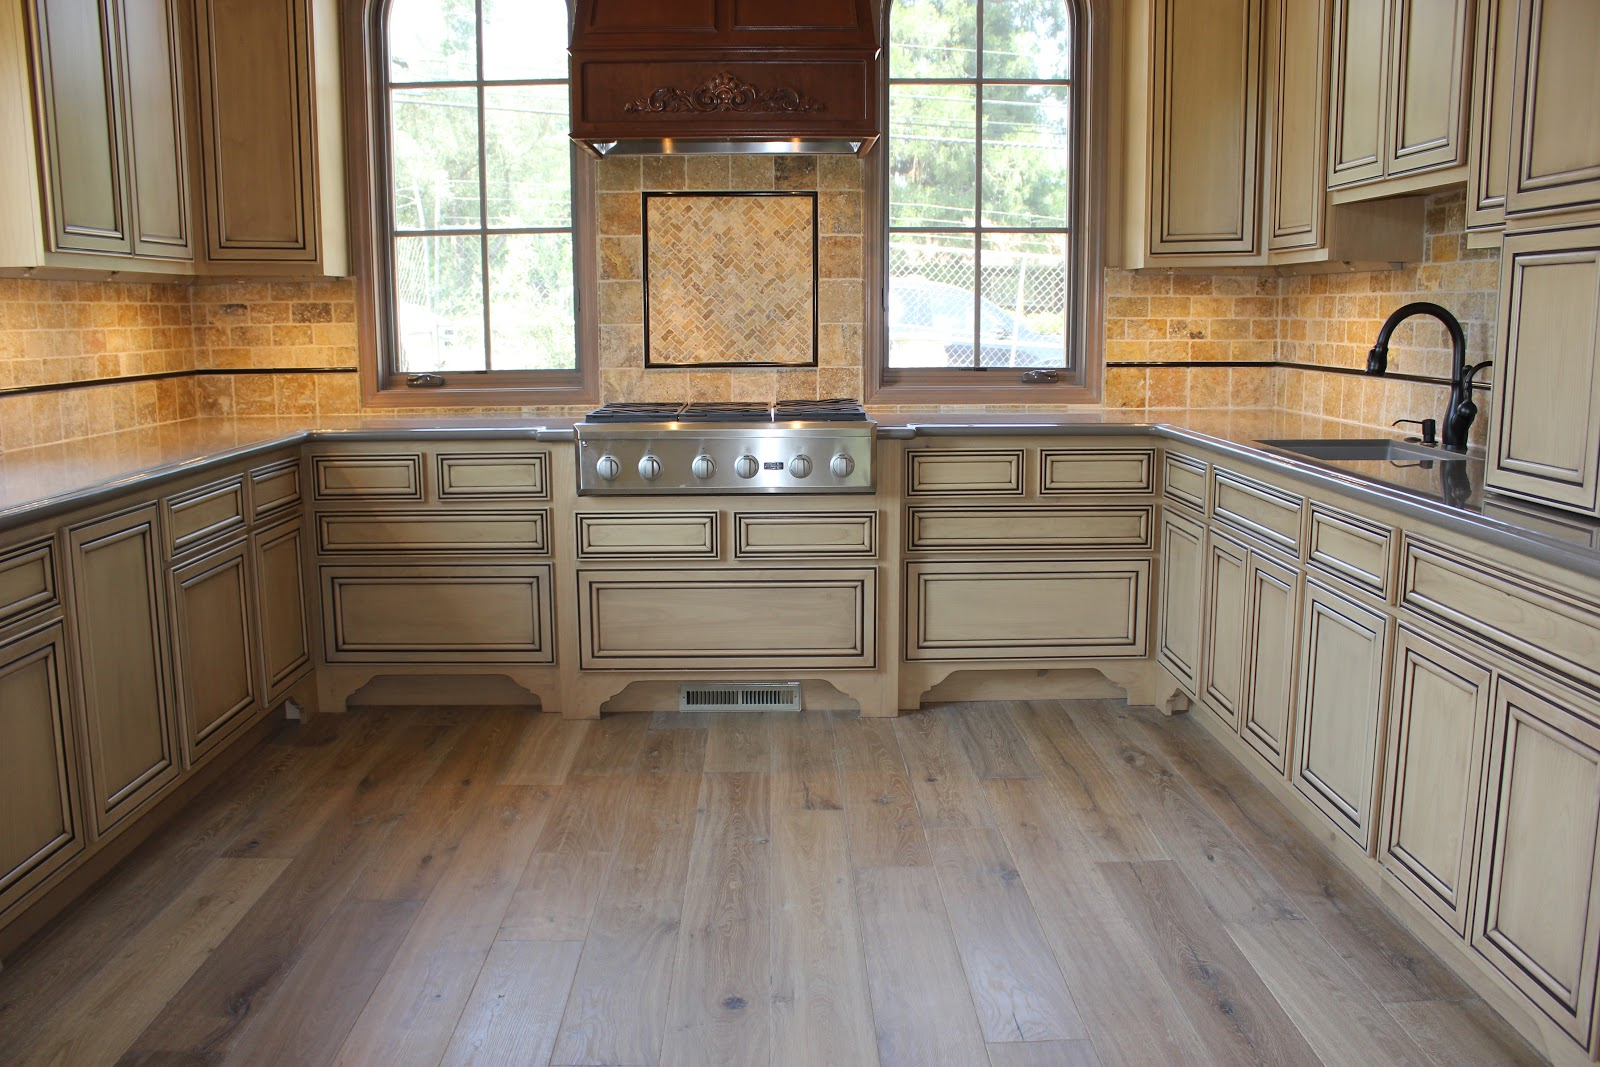 Simas Floor and Design Company: Hardwood Flooring by Royal Oak